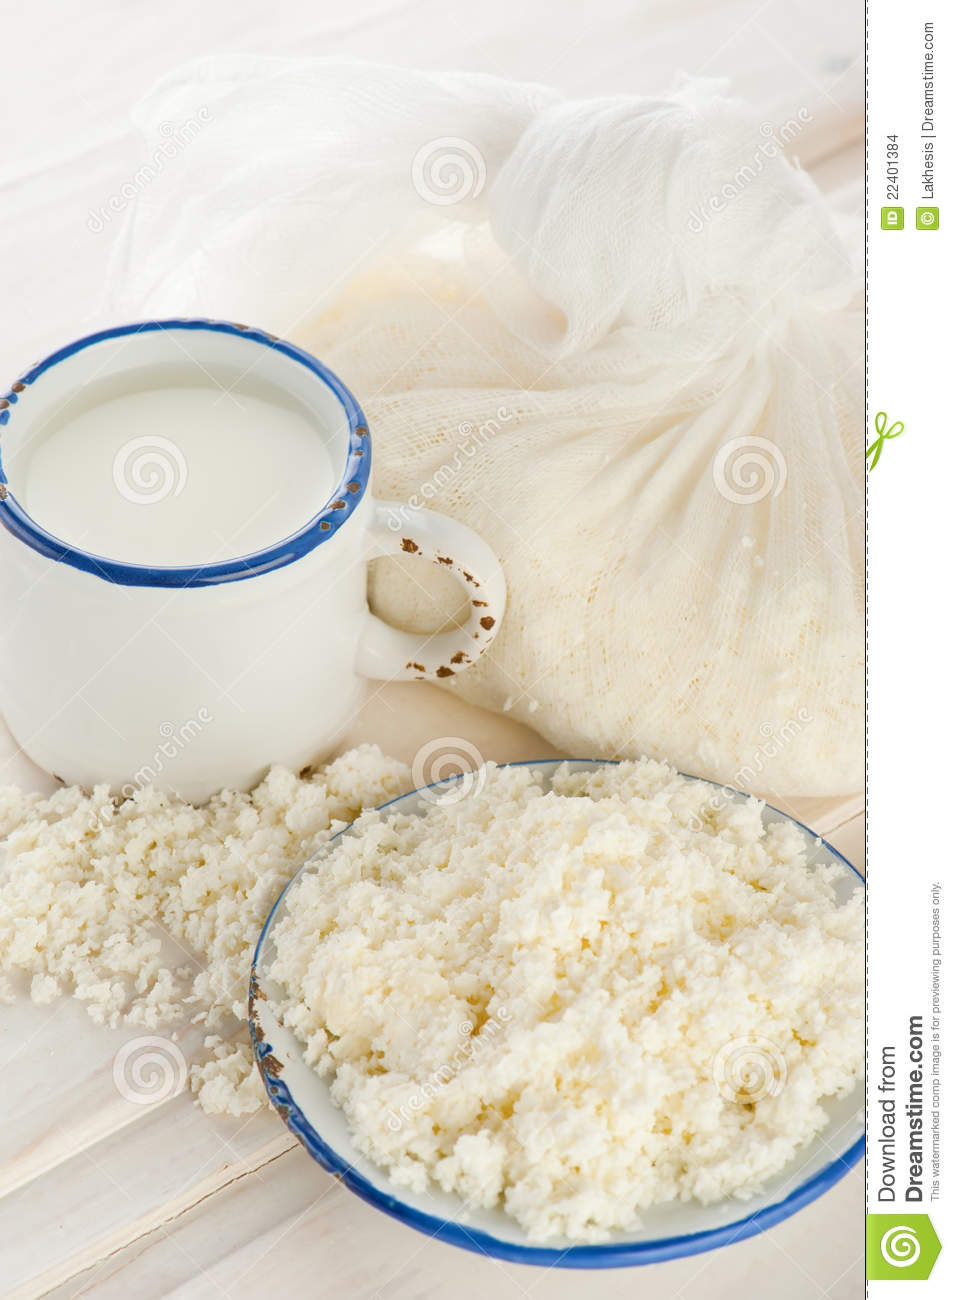 how to make cottage cheese from milk